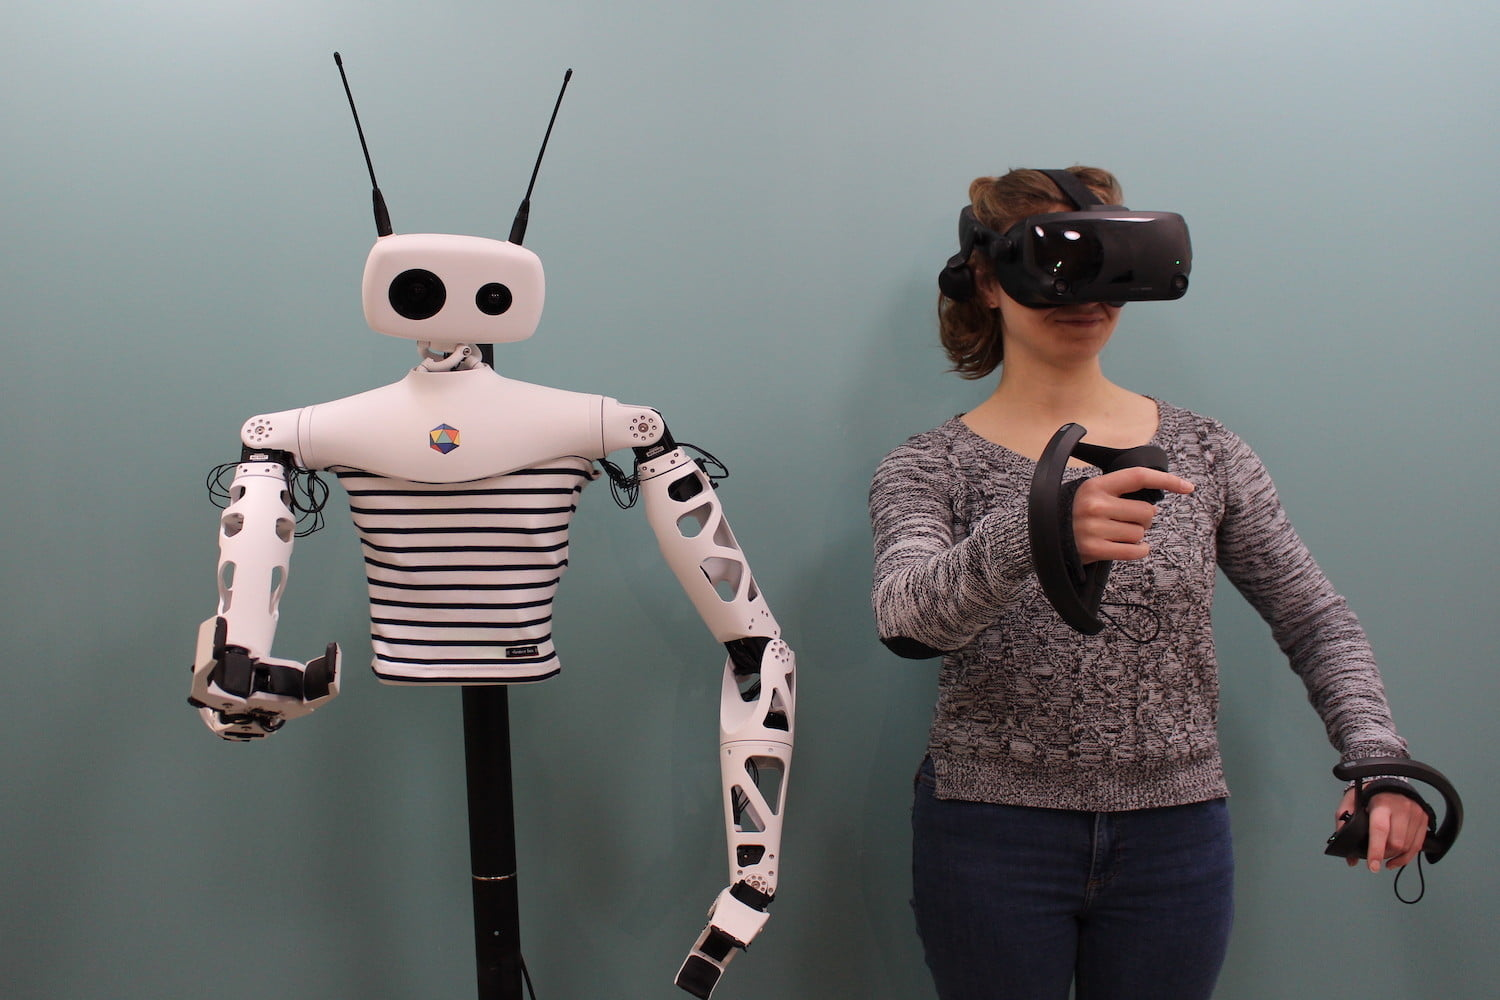 digitaltrends.com - Luke Dormehl - Quirky Humanoid Robot Can Be Teleoperated Using a VR Headset